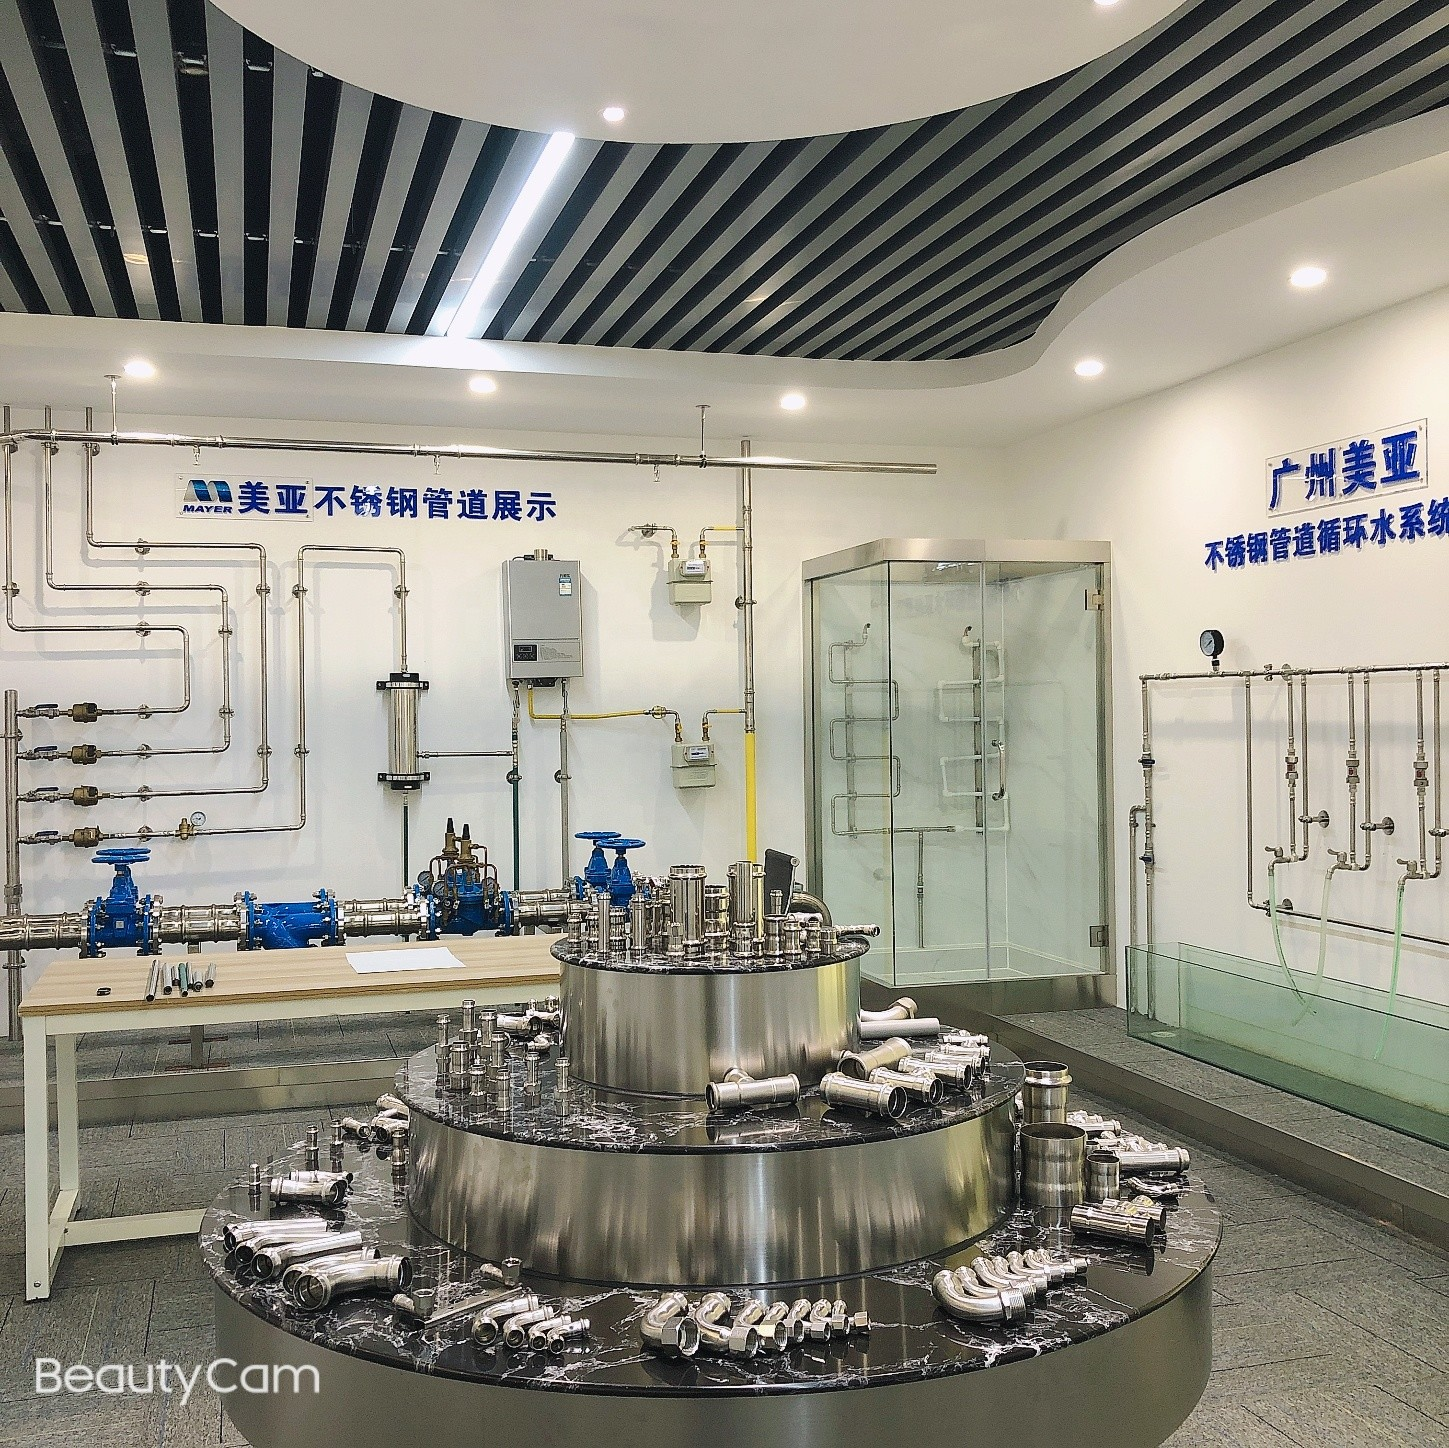 Fast and easy operation electro hydraulic crimping tool use for press fitting installation